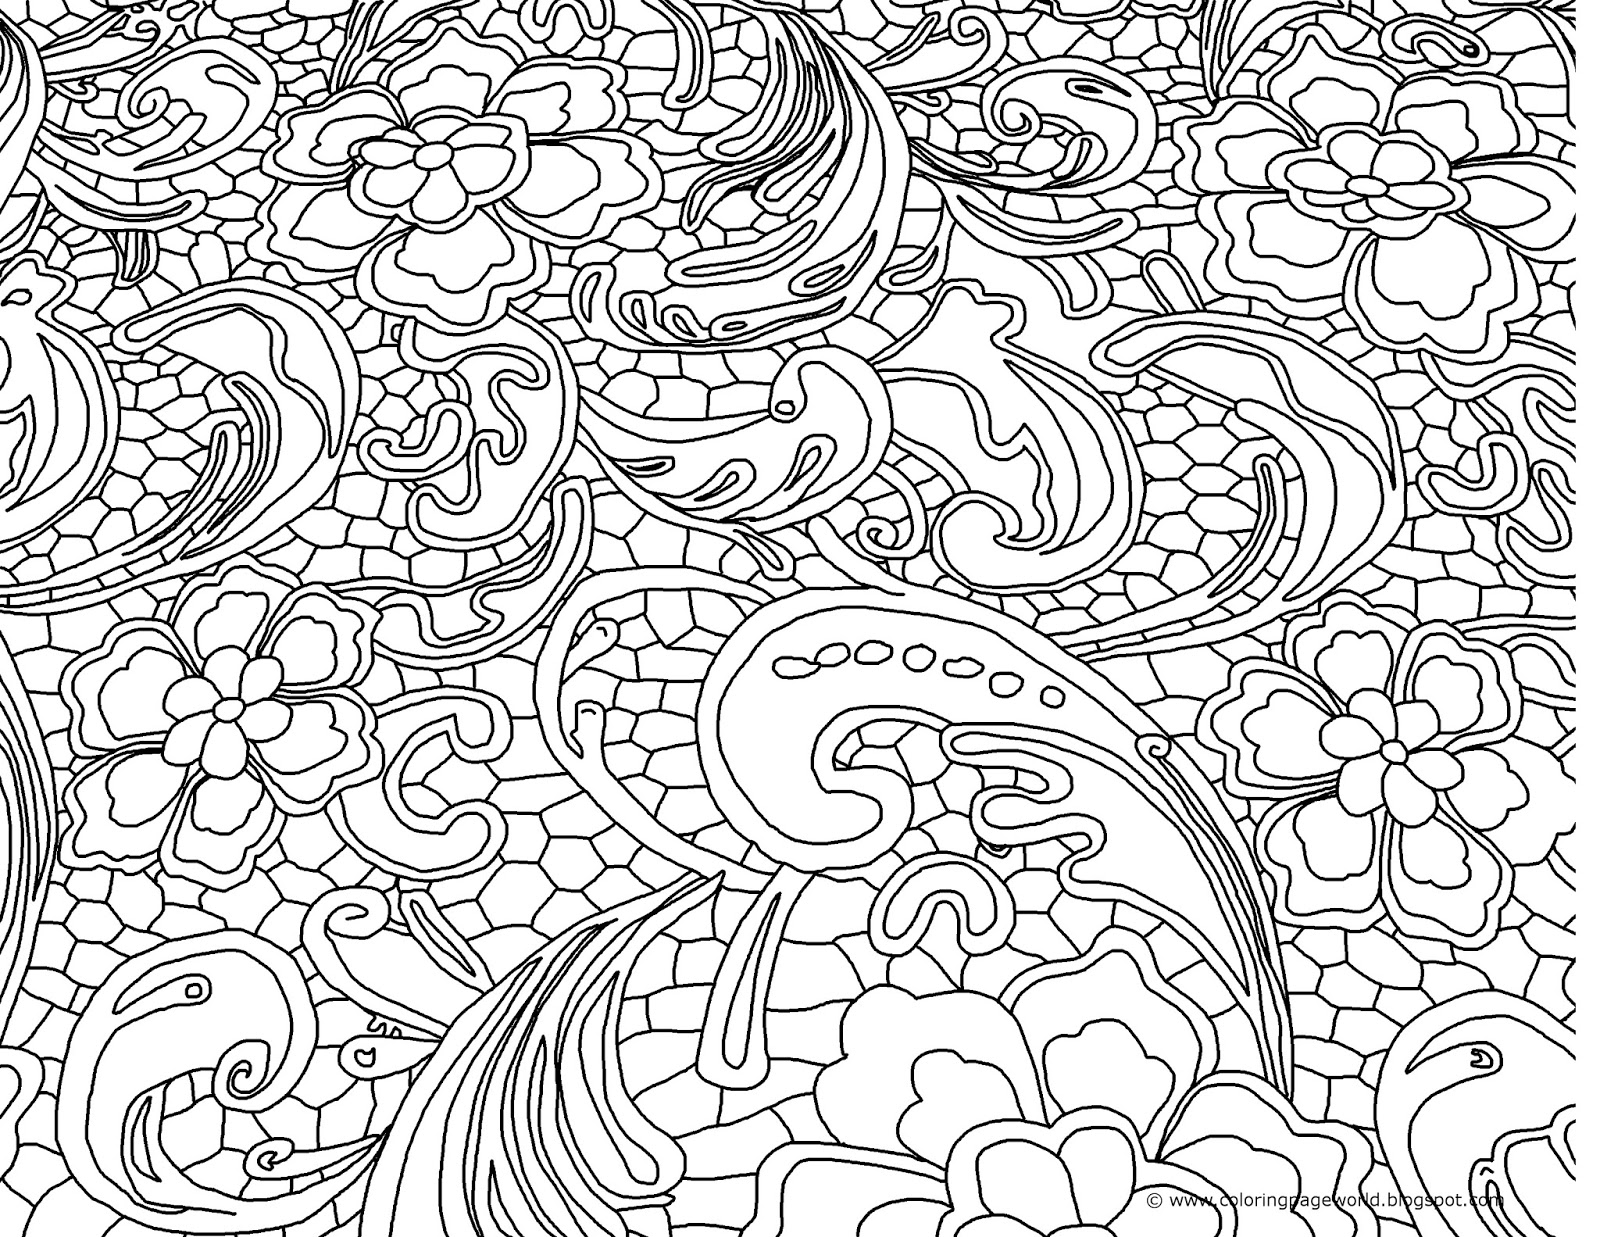 Coloring page world flowery landscape Landscape coloring books for adults